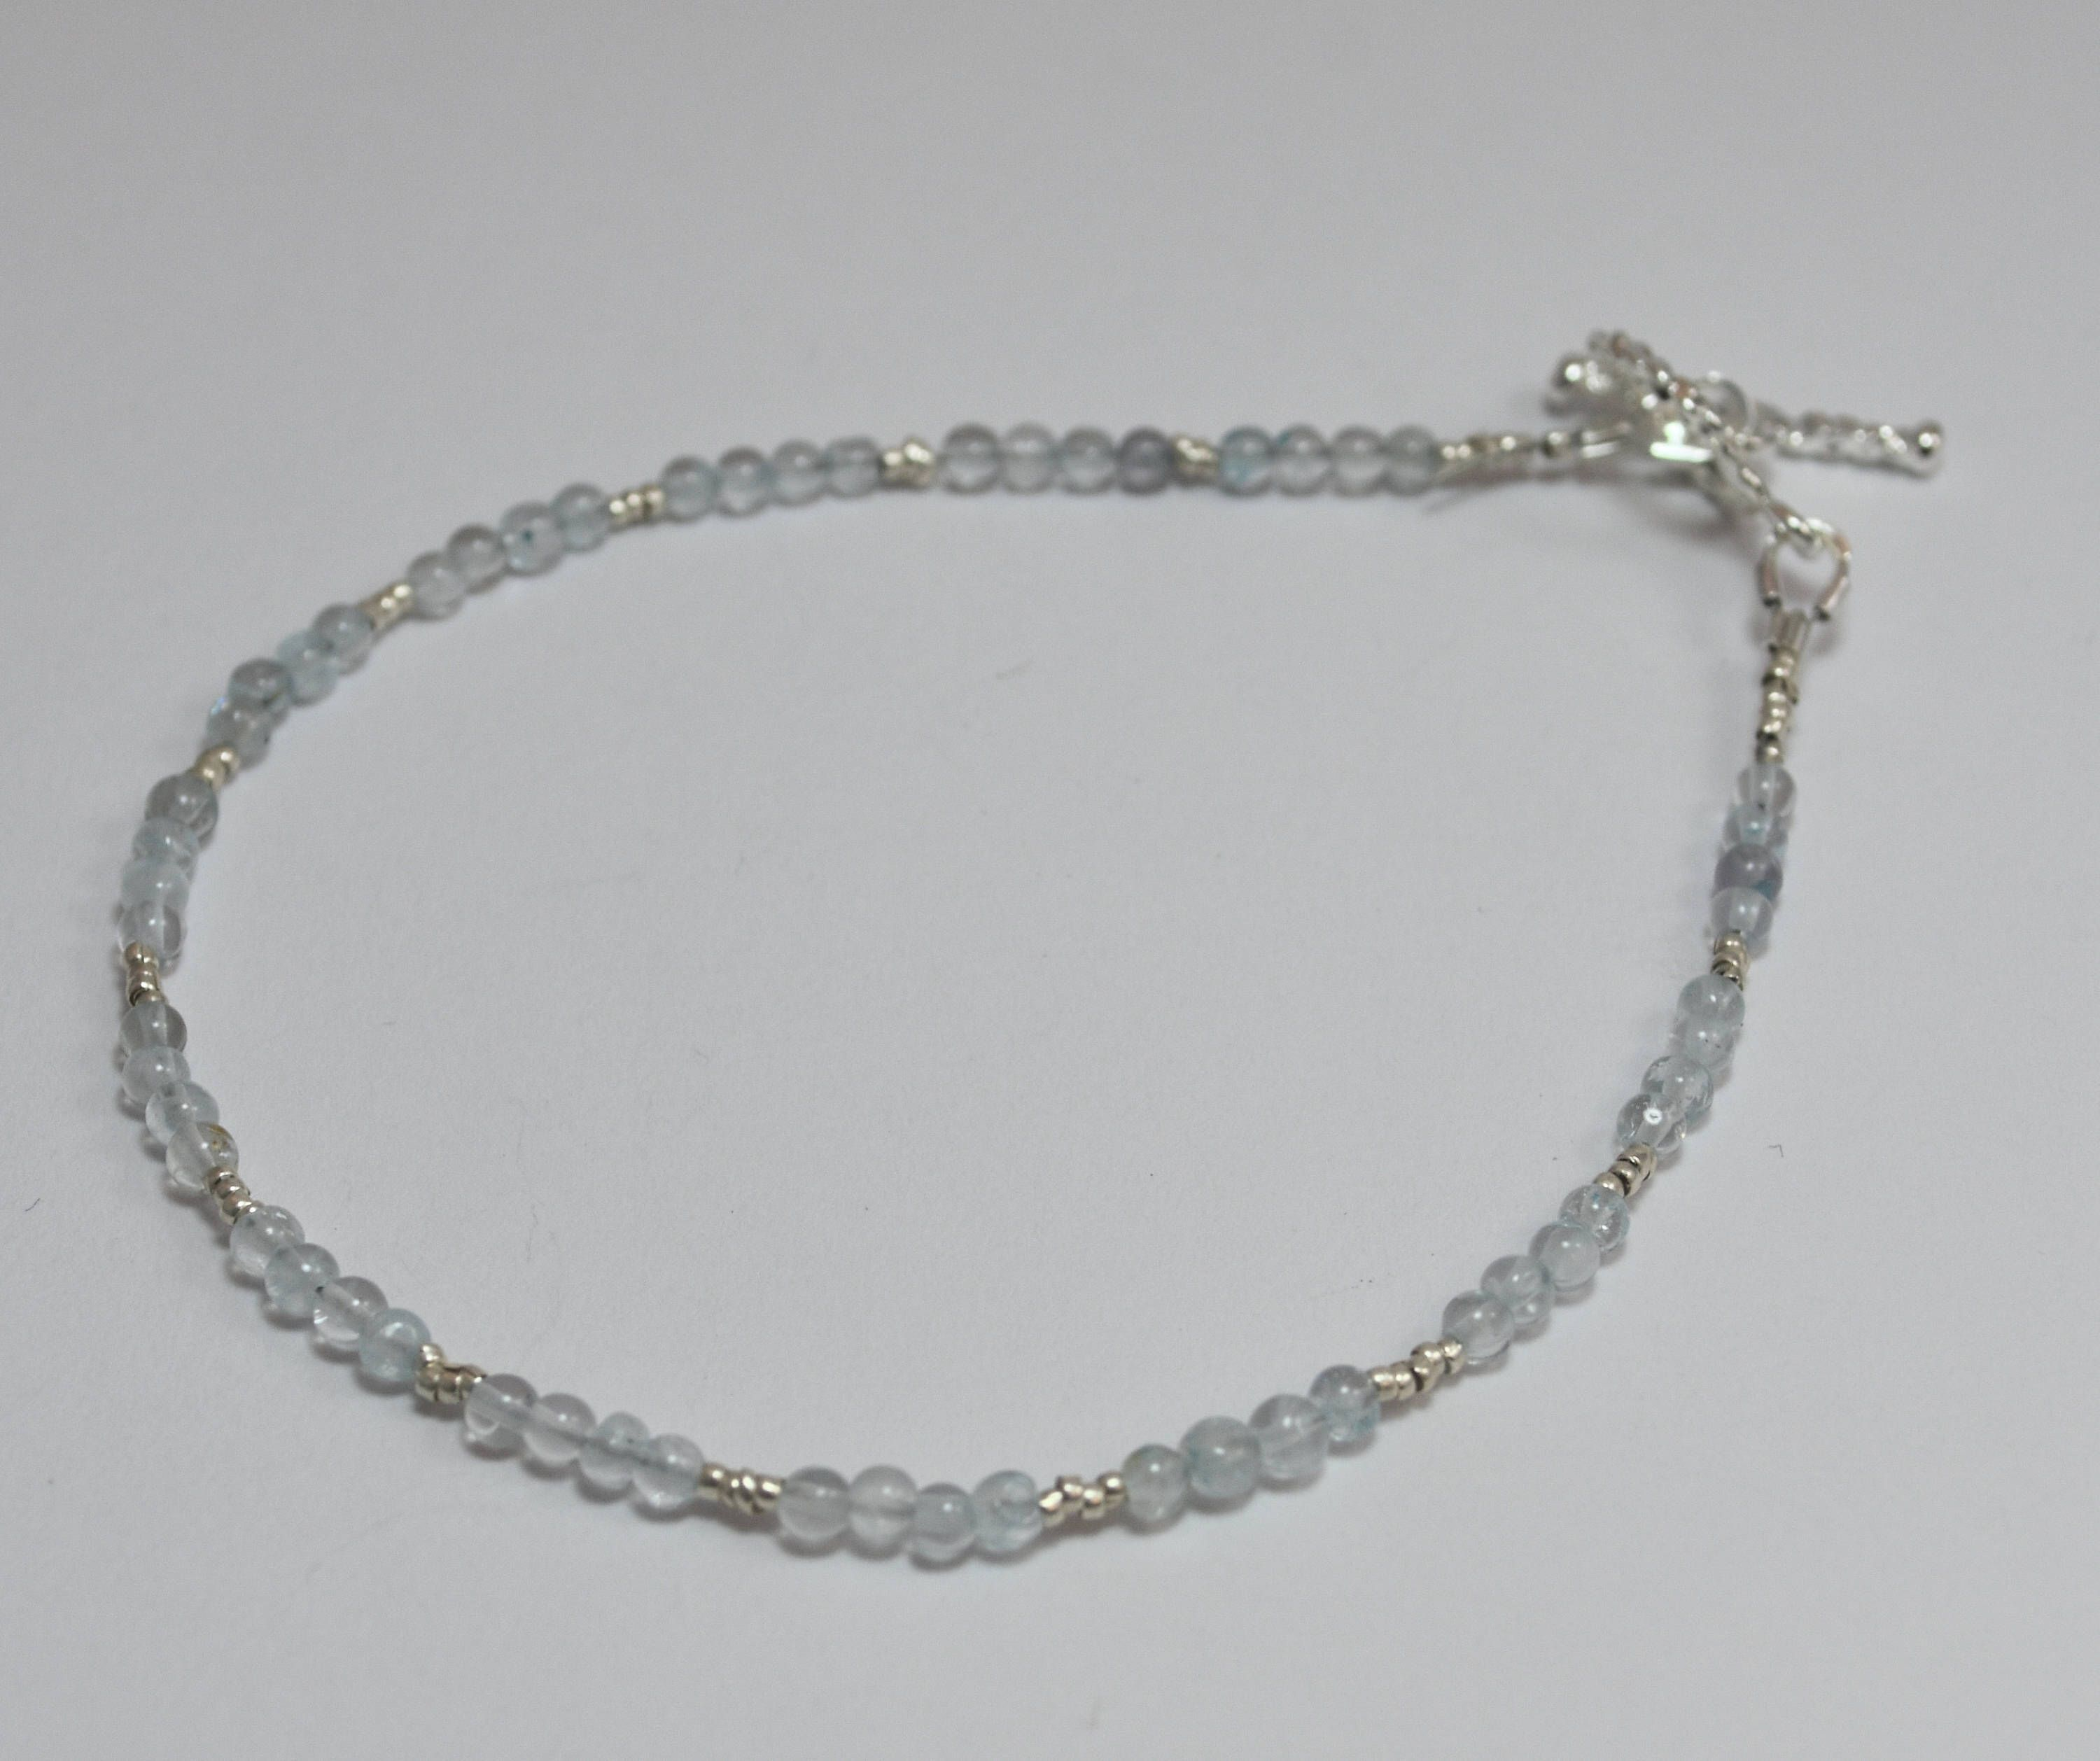 beach anklet summer water birthstone aquamarine crystals fullxfull gemstone p il march body silver jewelry sterling